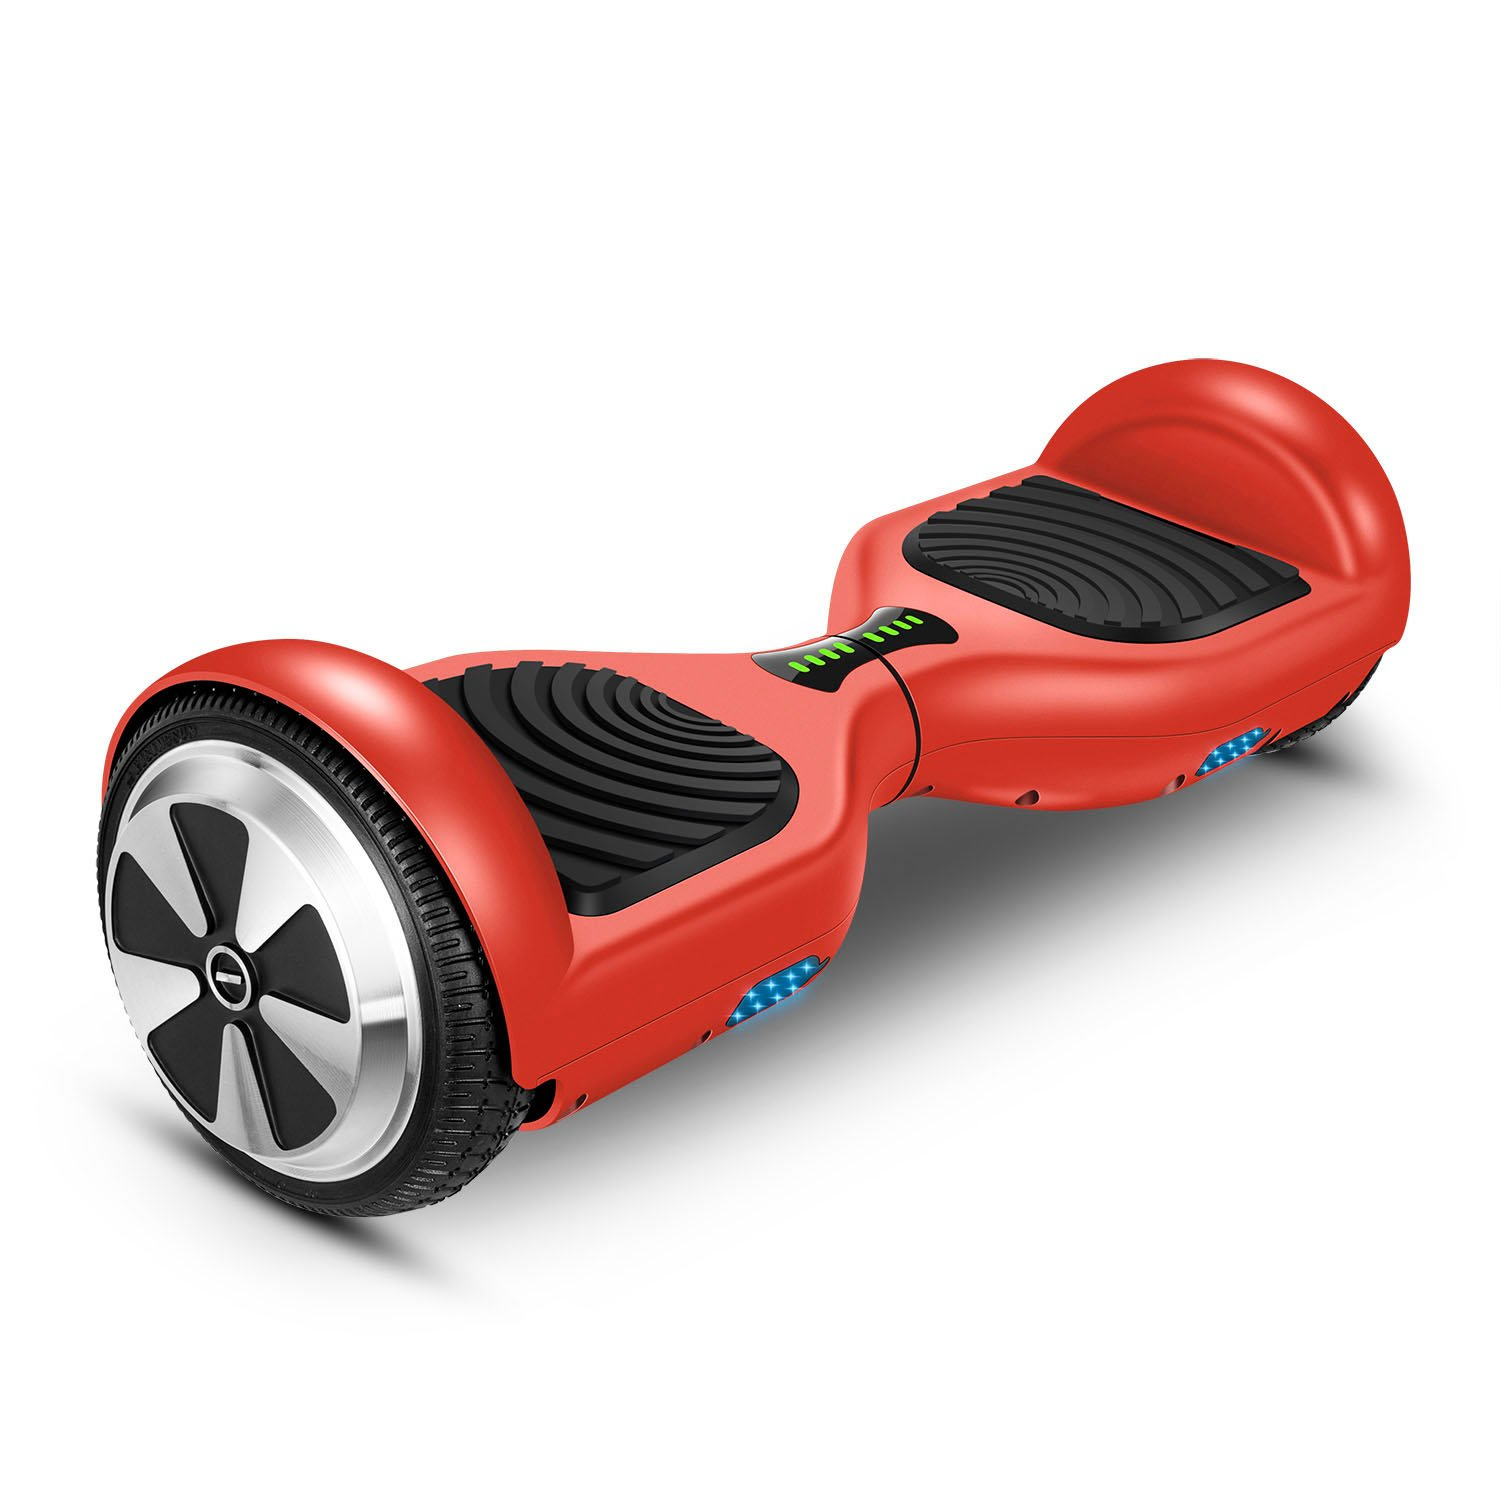 Hoverboard Two-wheel Self-balancing Scooter-VEEKO UL2272 Certificated 6.5'' All-terrian Aluminum Alloy Wheels,350W Dual Motor for 9.6Km/hr Max Speed and 225lbs Max Weight-Red